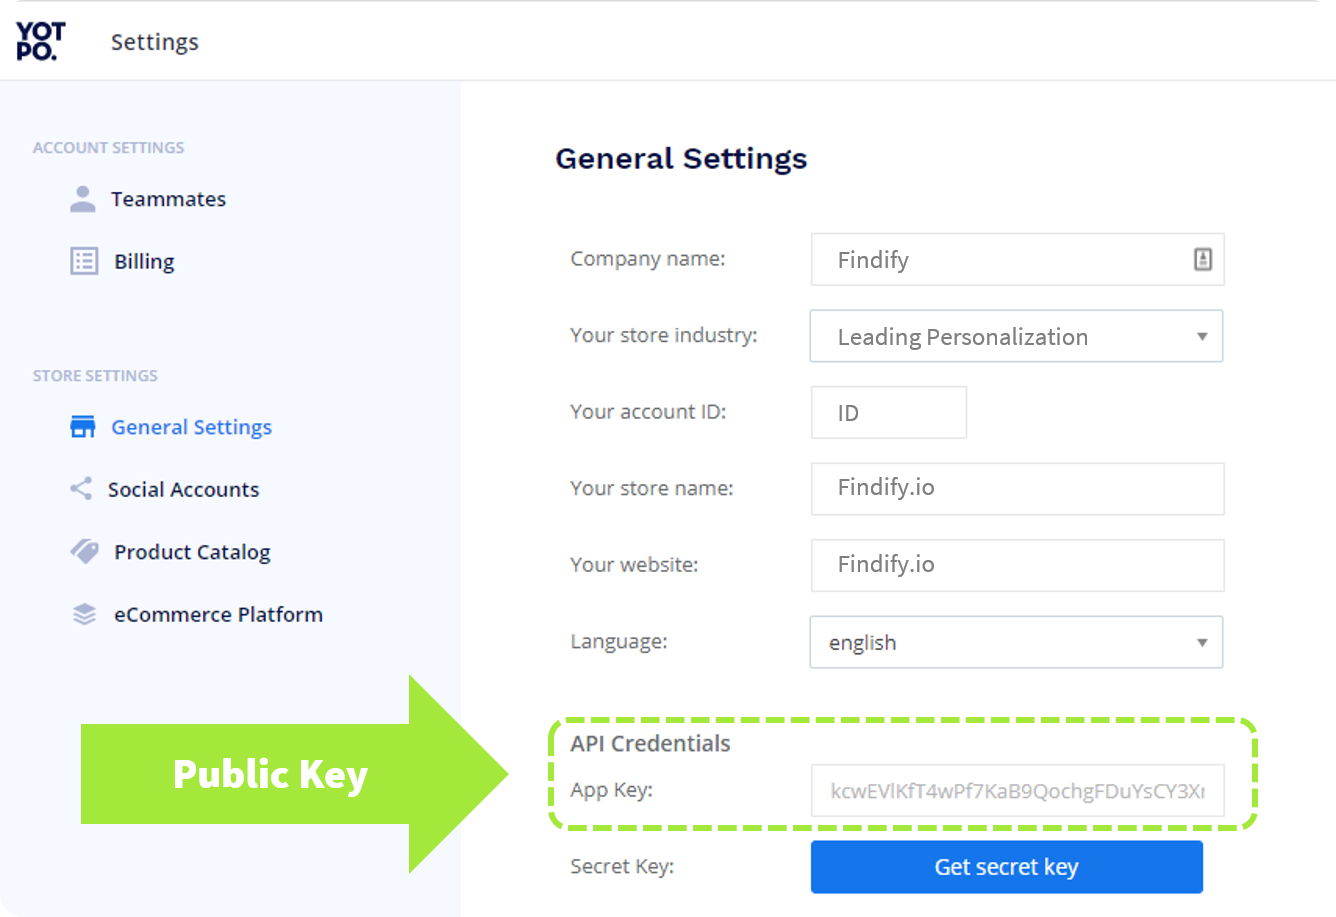 App Key in the API Credentials section